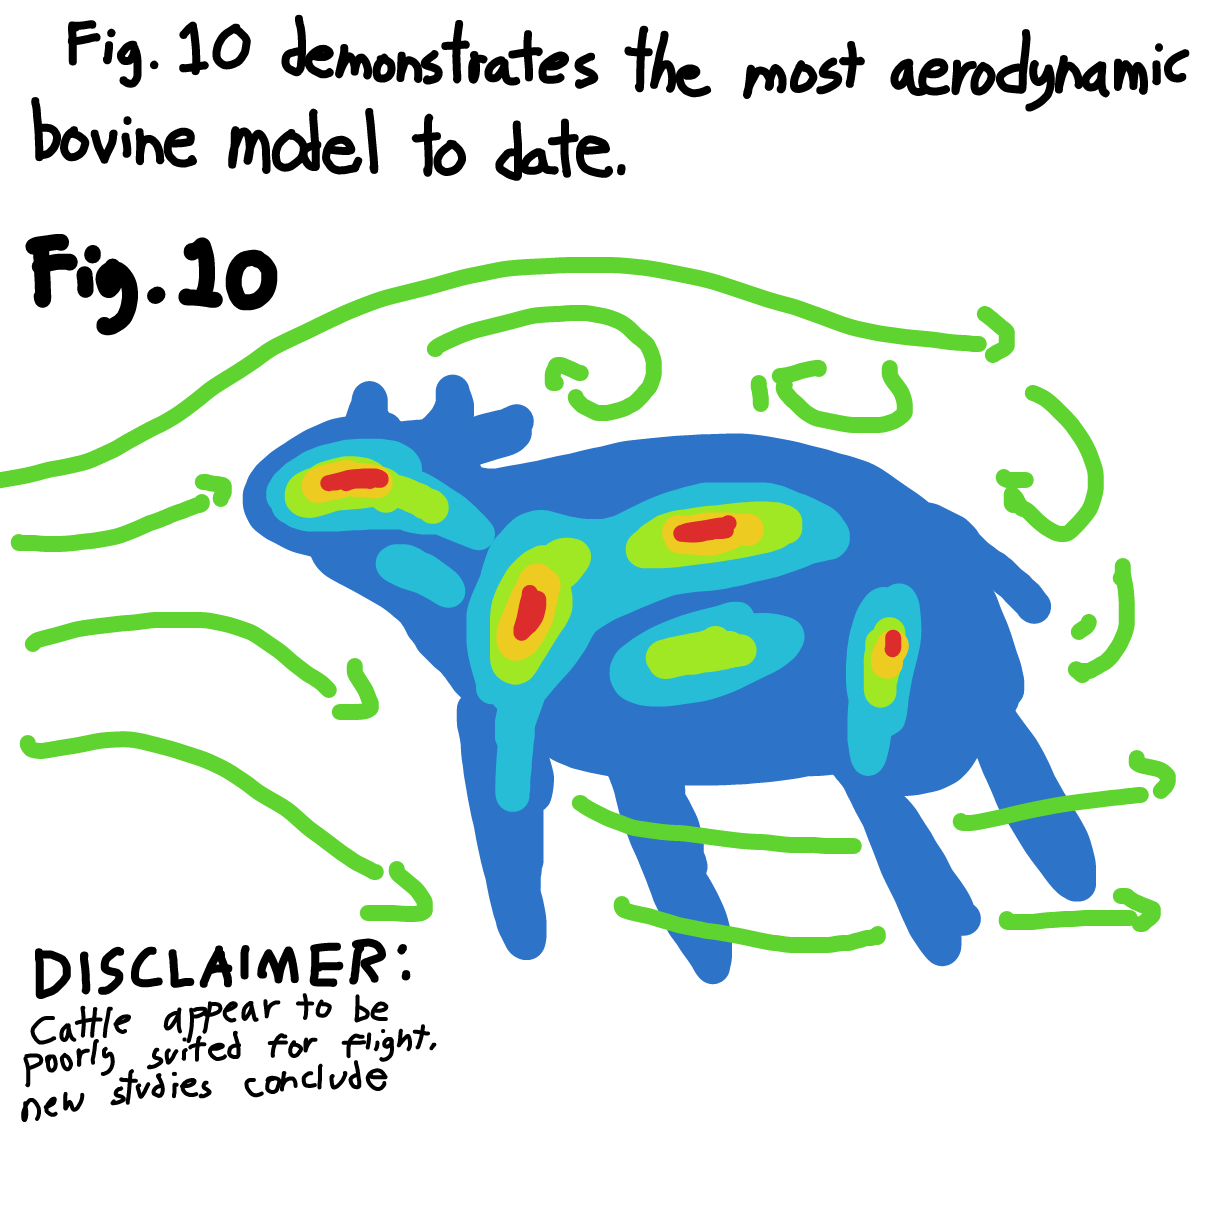 Drawing in The aerodynamics of a cow by bajira